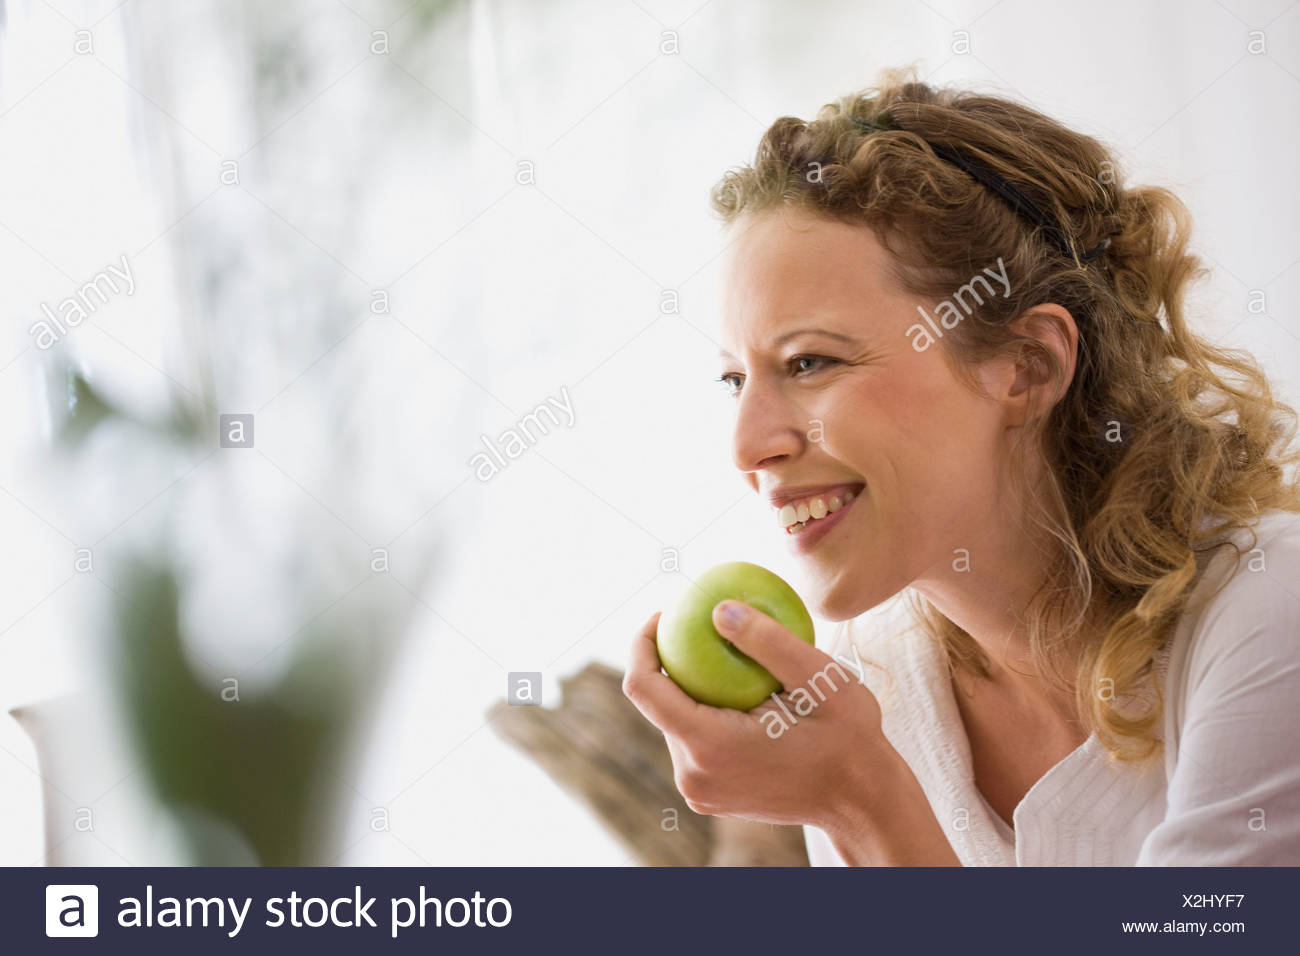 Middle-aged woman eating a apple Photo Stock